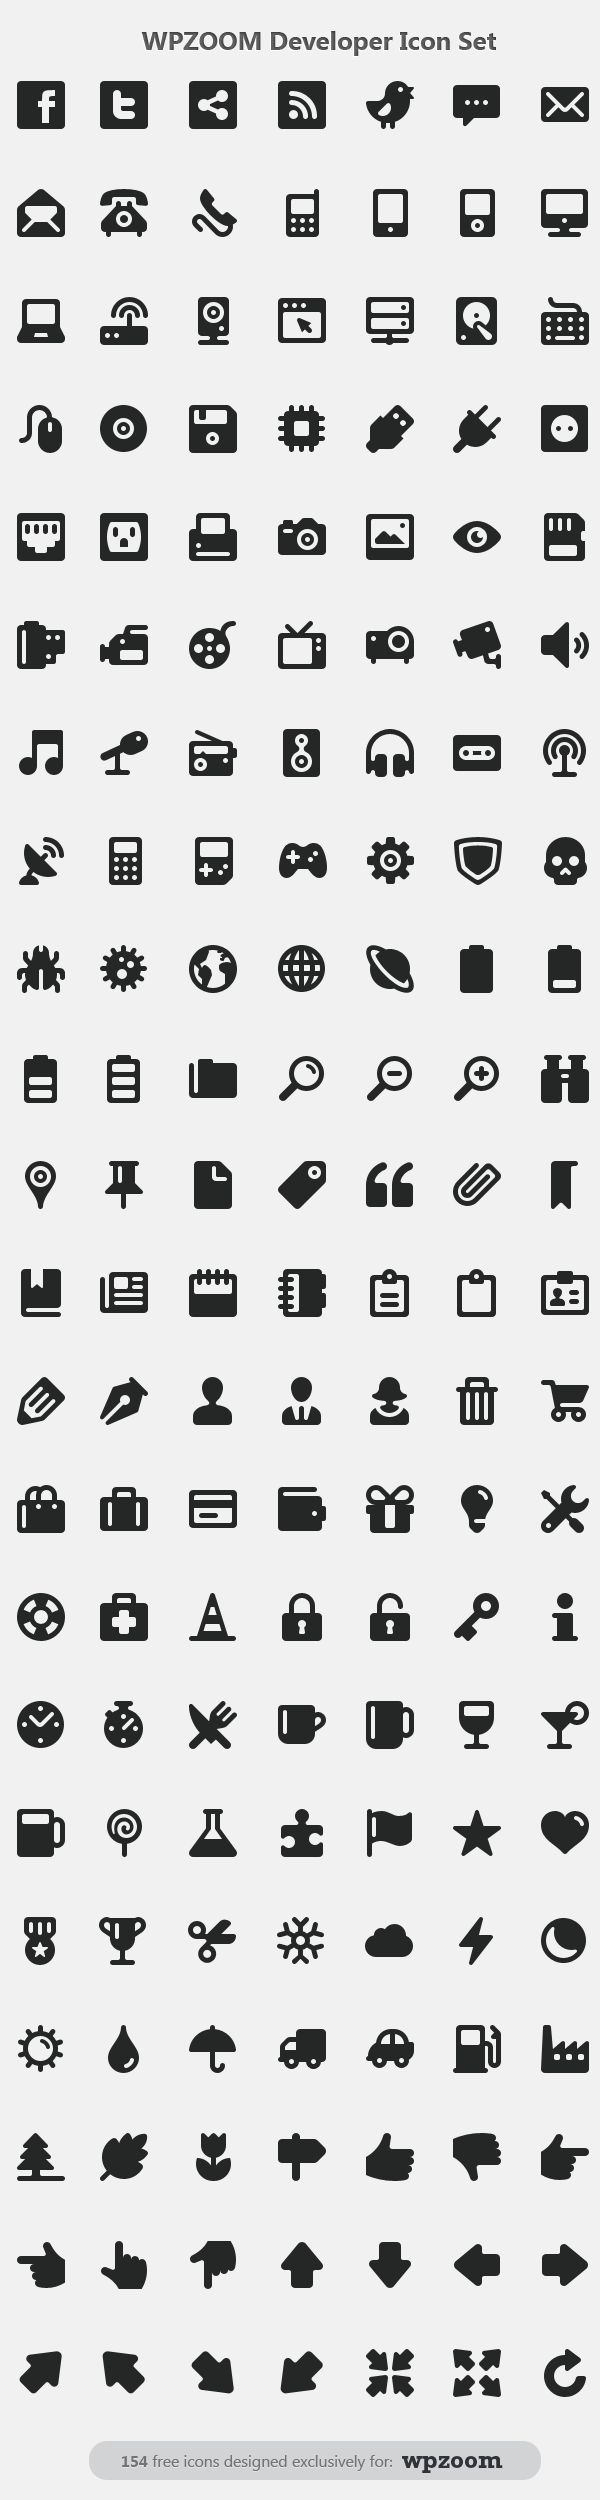 best icones images on Pinterest Icon design Icon icon and